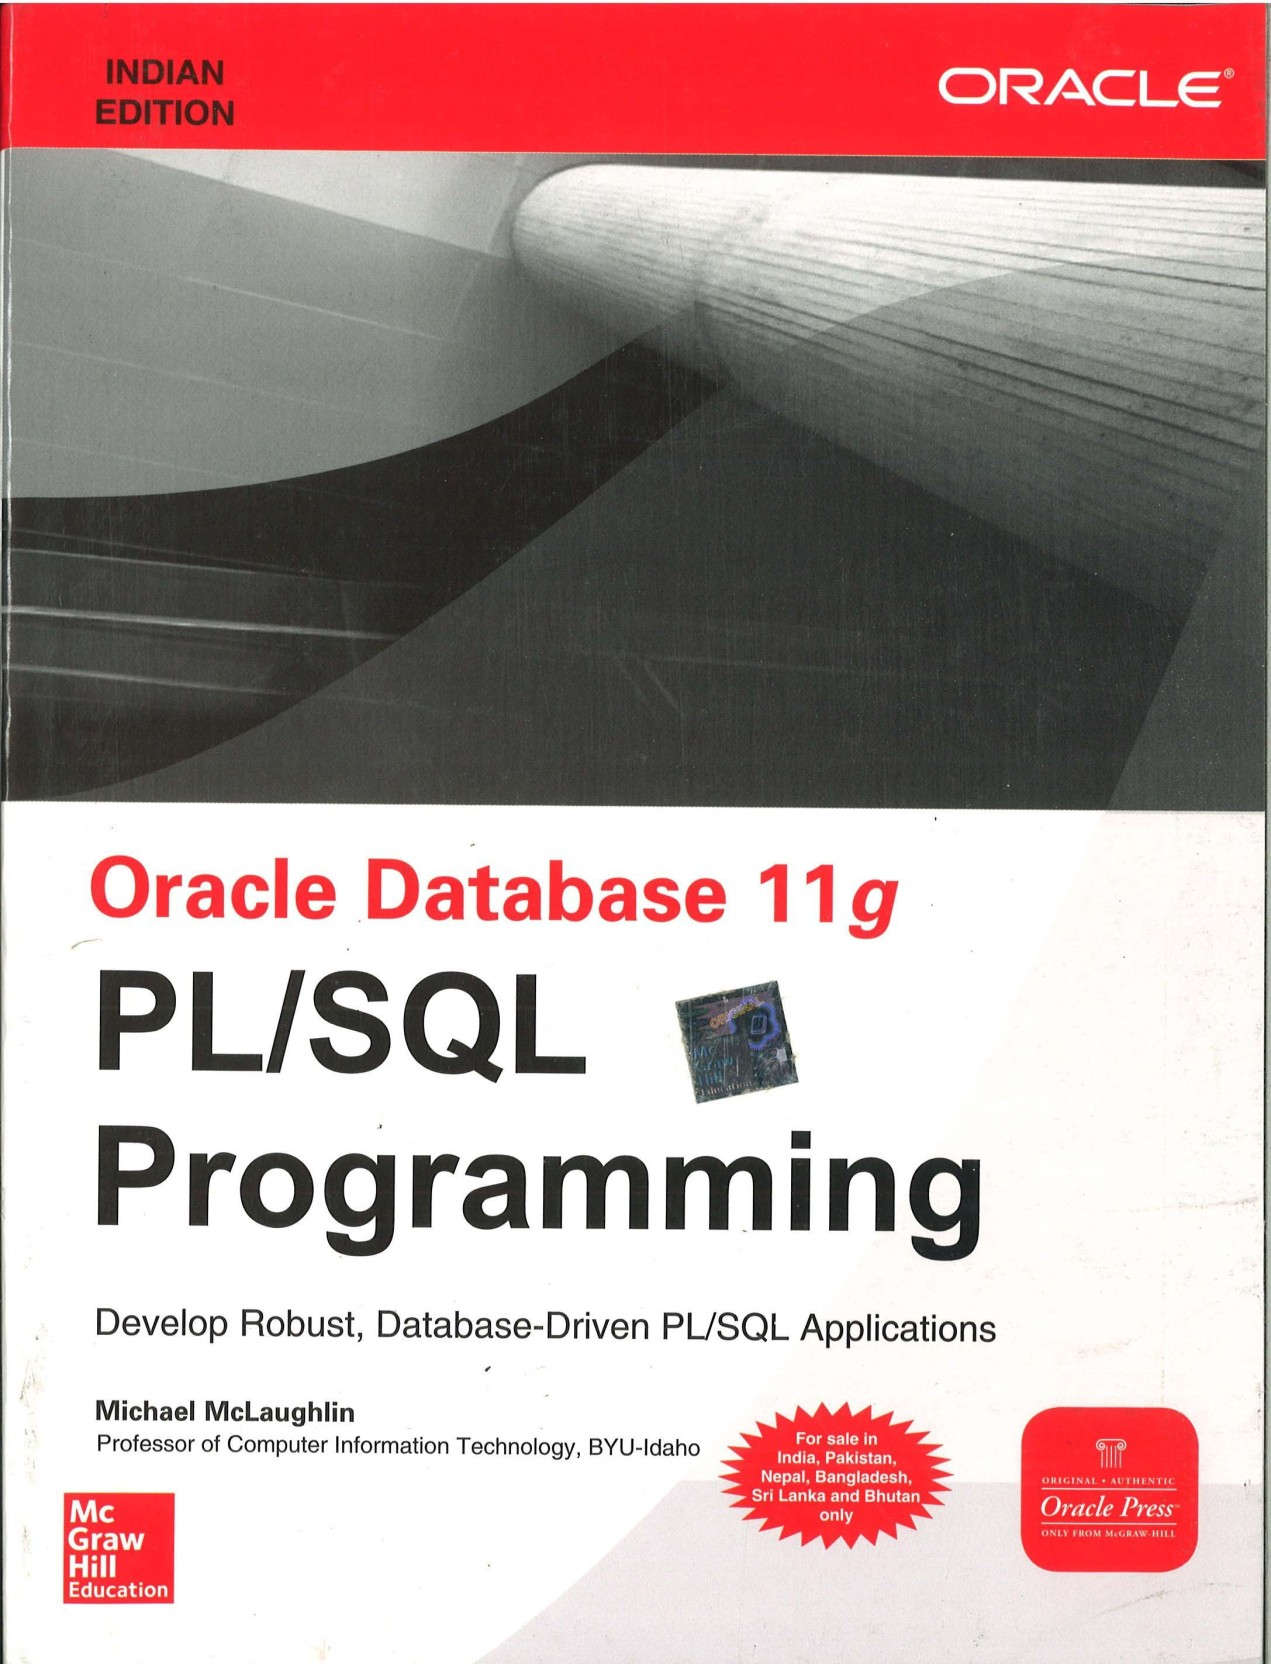 Oracle Database 11G Pl/Sql Programming Indian Edition. Home